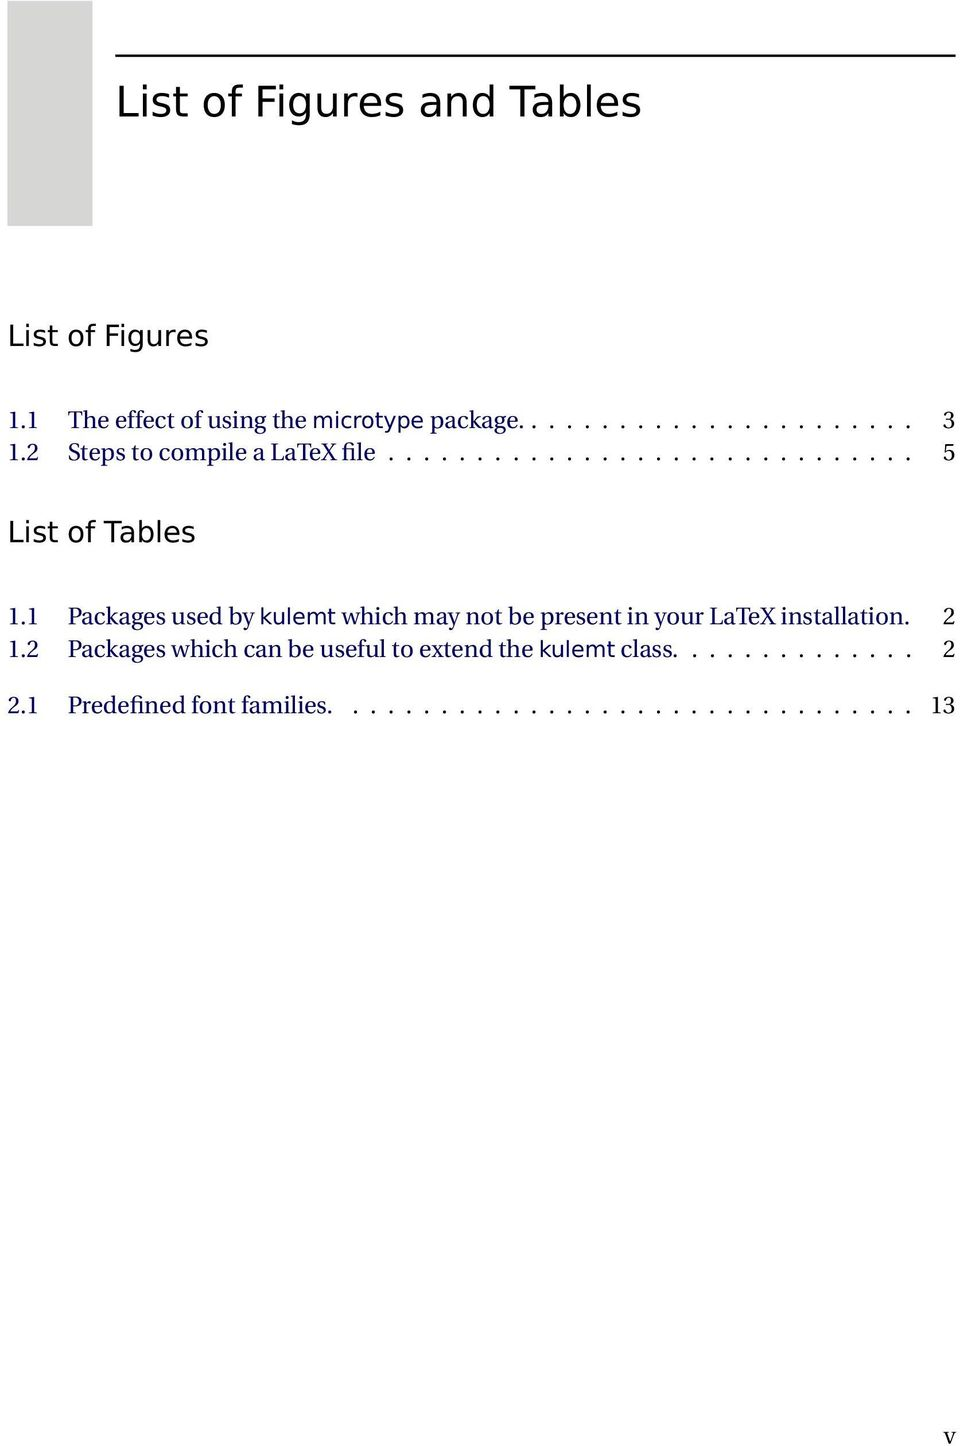 1 Packages used by kulemt which may not be present in your LaTeX installation. 2 1.